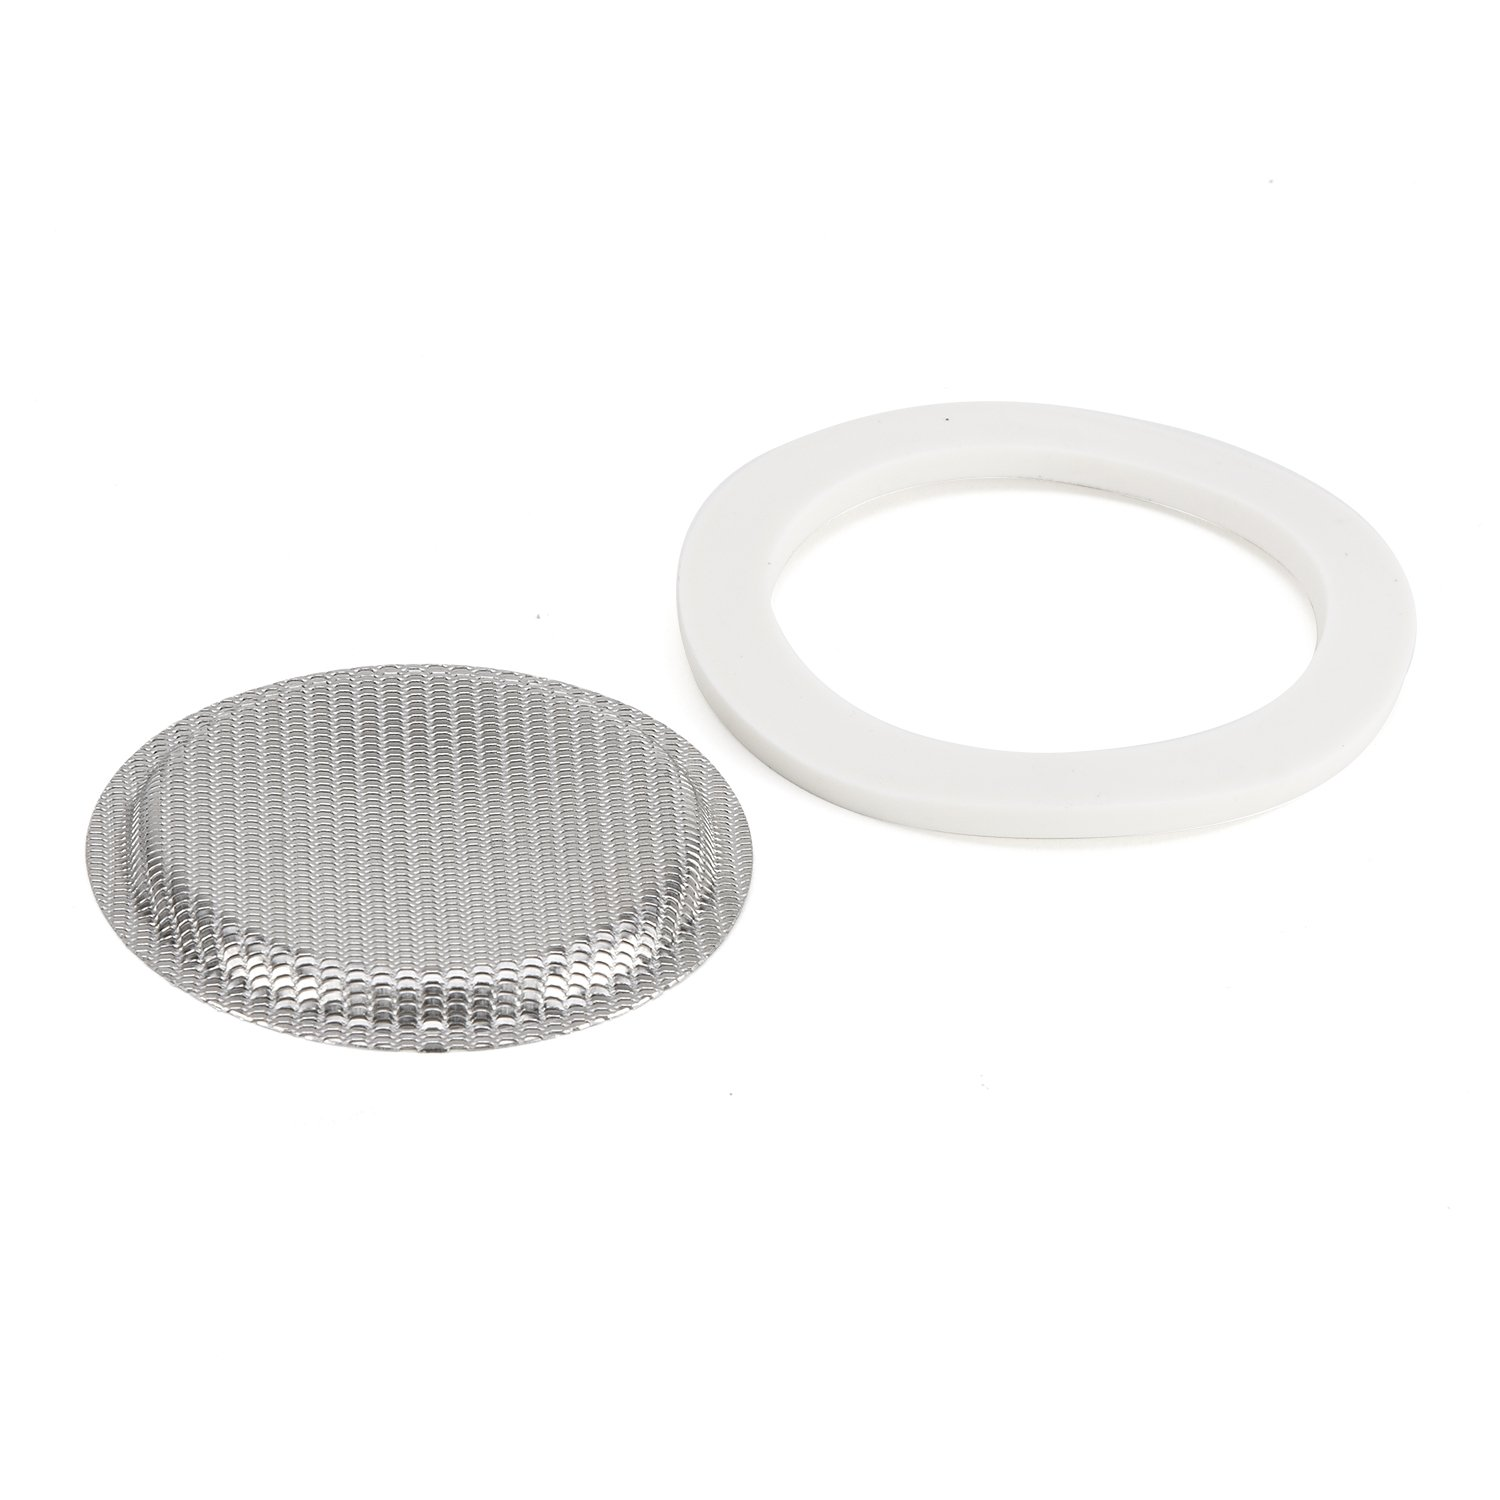 Bialetti 06996 Mukka 2 cups - Gasket/Filter Replacement Parts